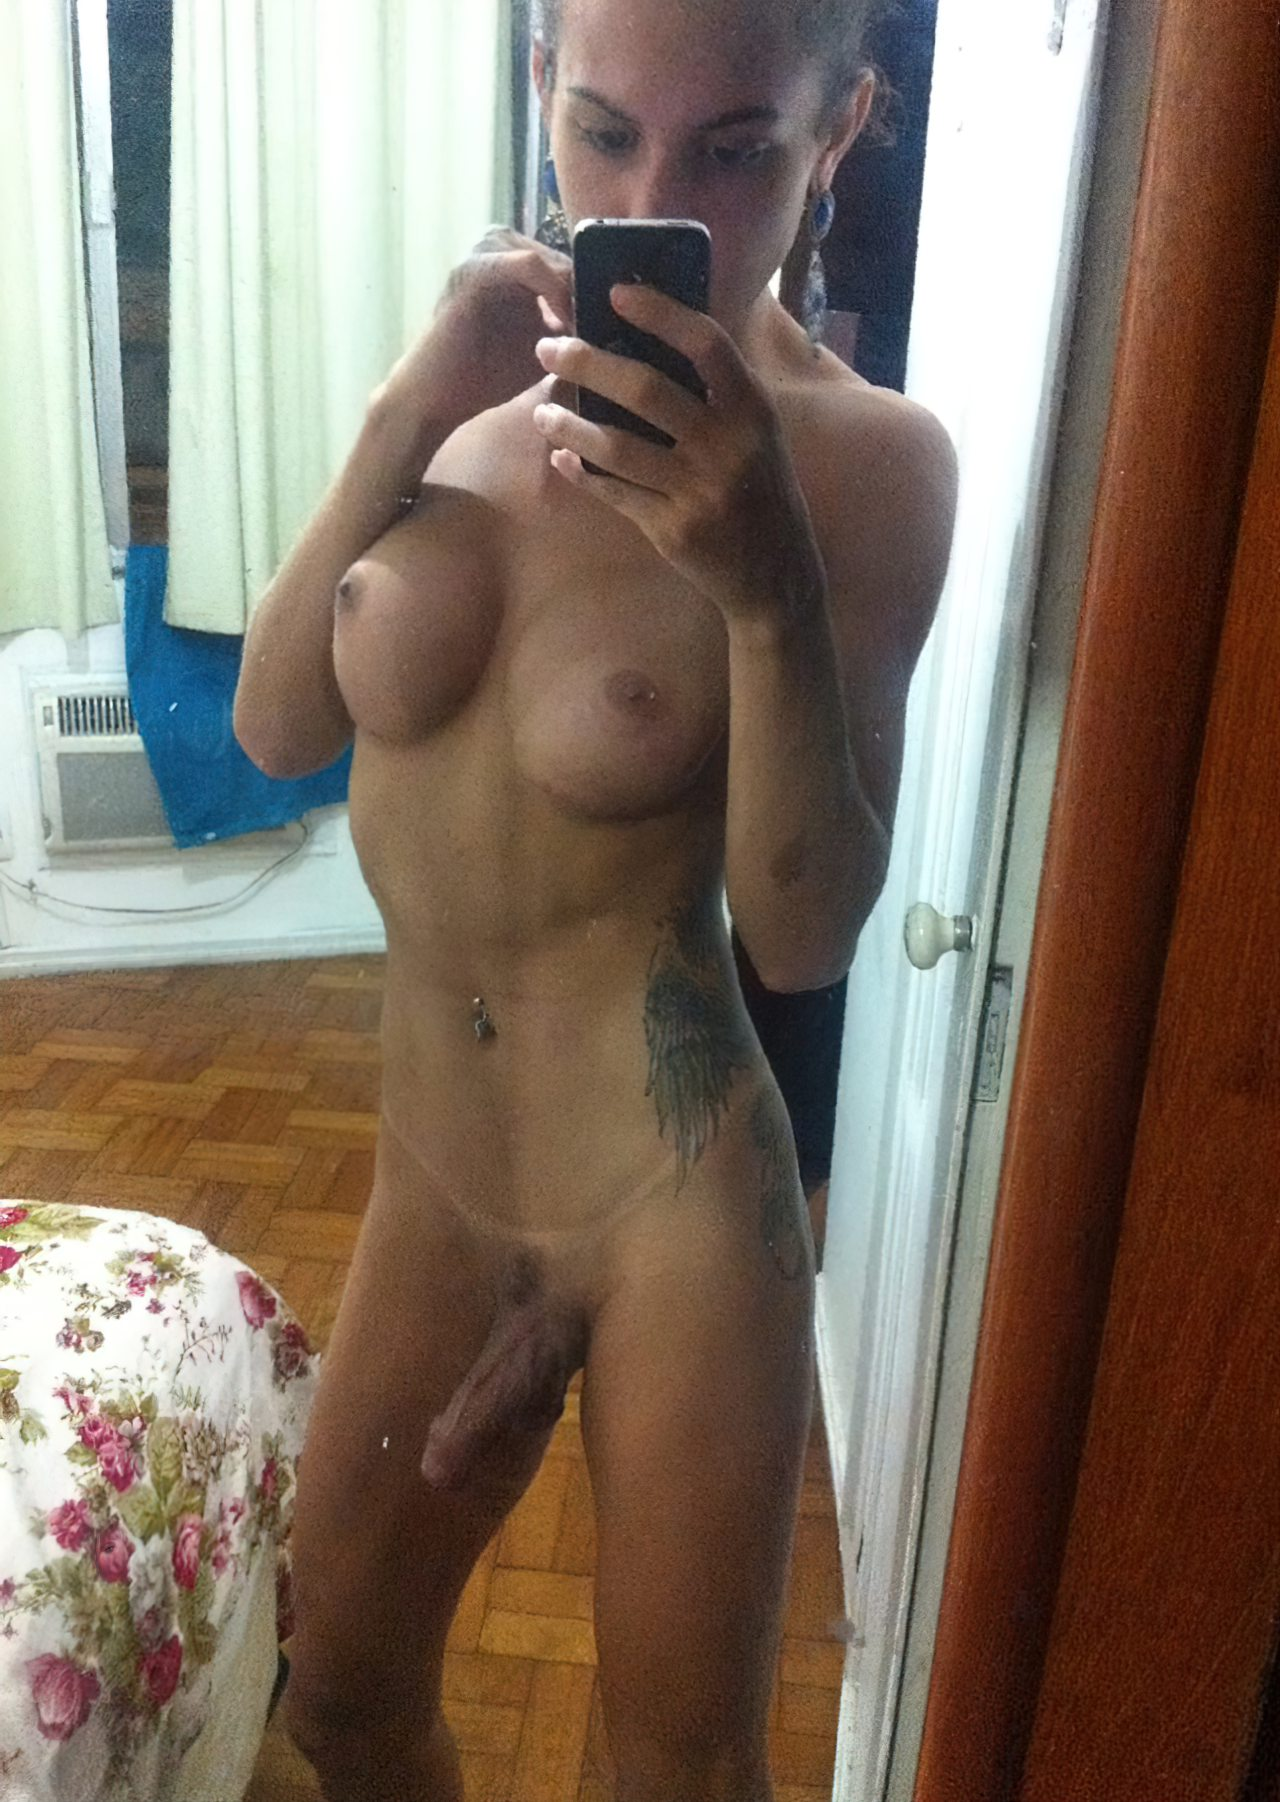 Fotos de Travestis Nuas (18)